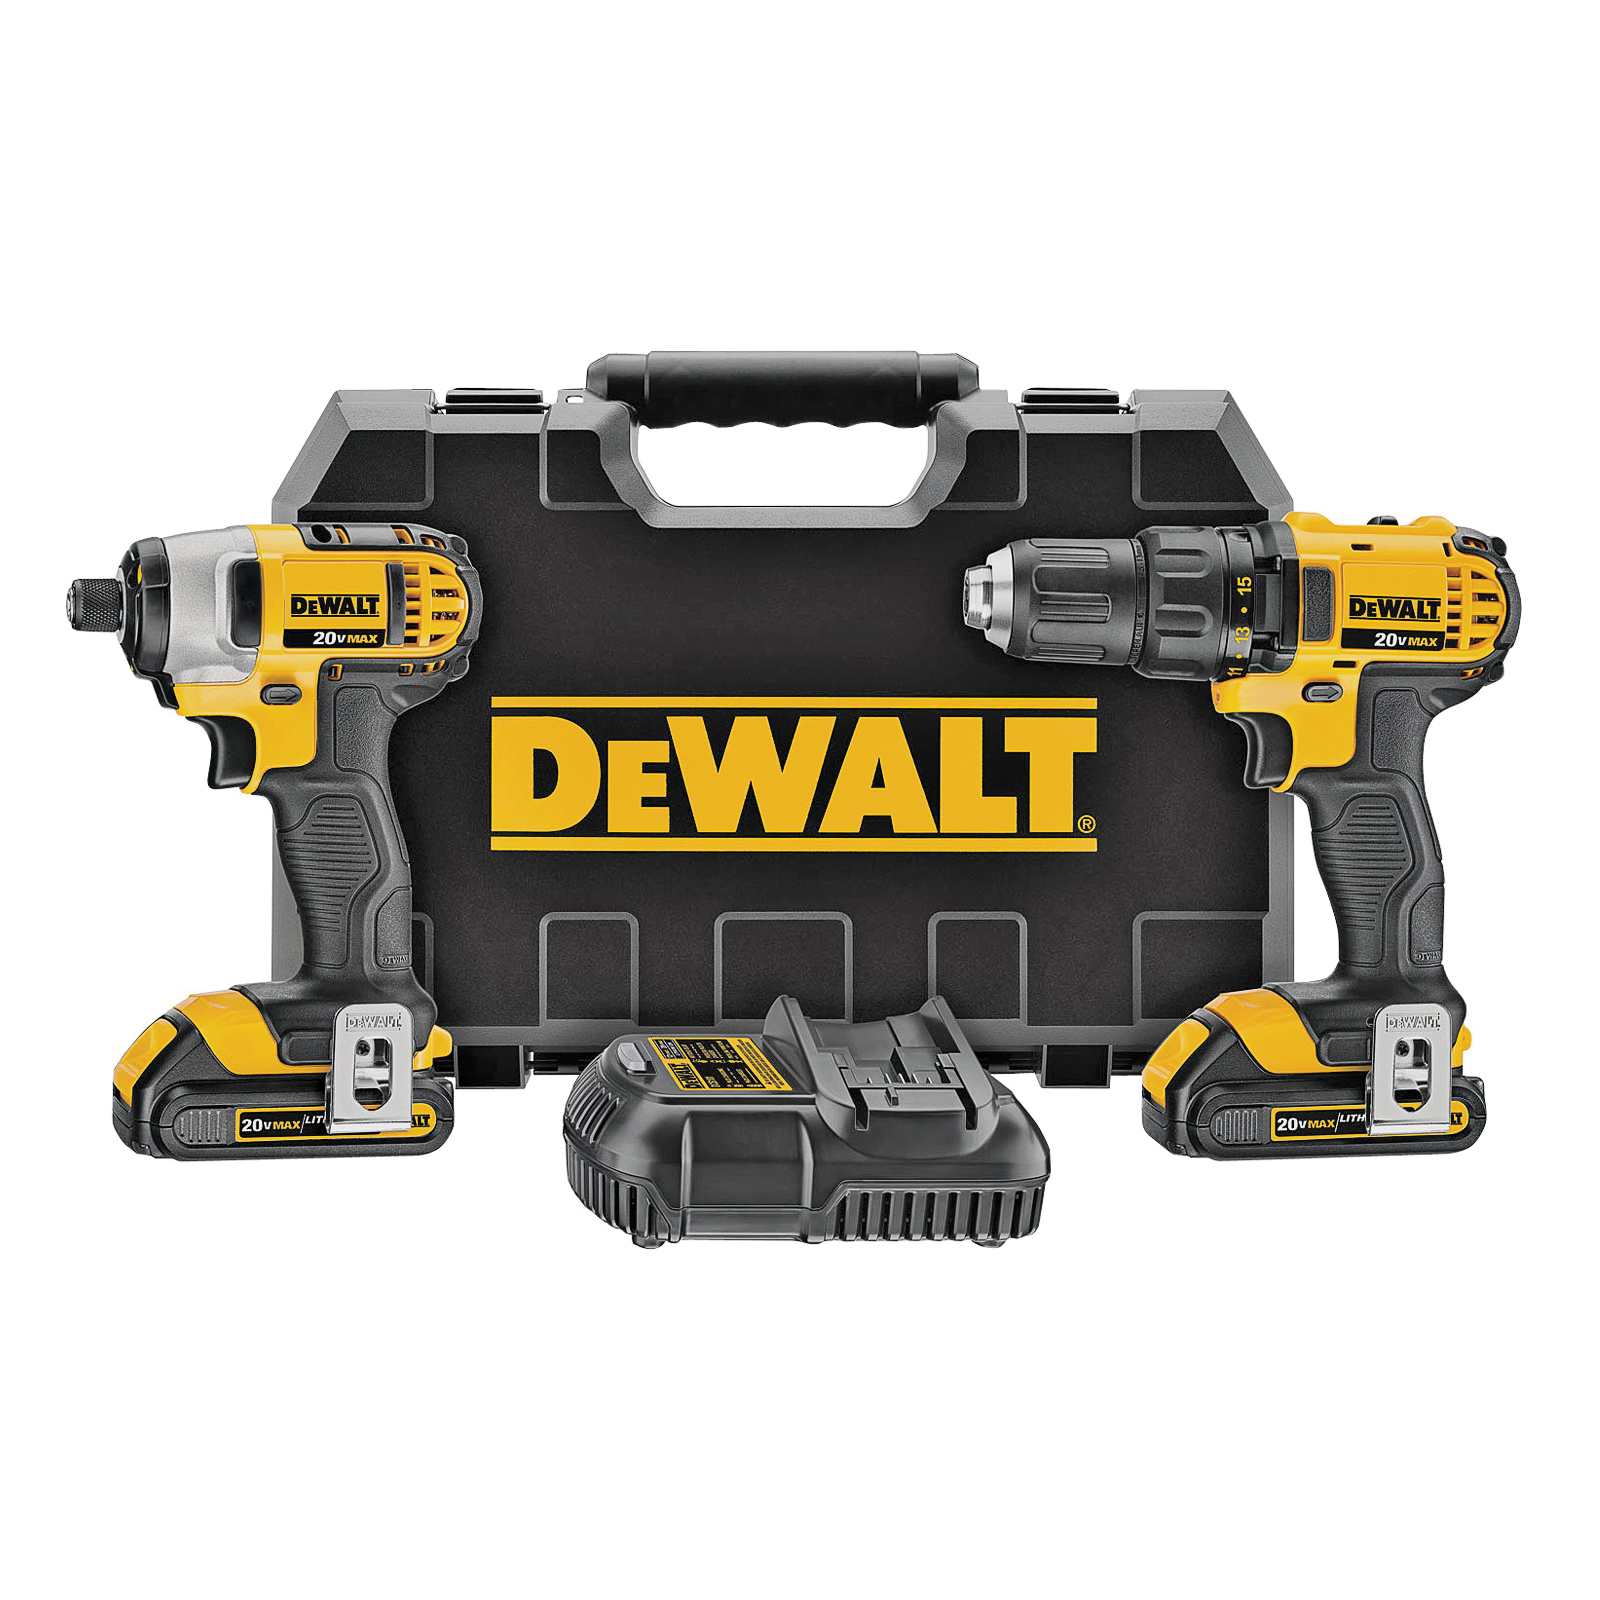 Picture of DeWALT DCK280C2 Driver Combo Kit, Battery Included: Yes